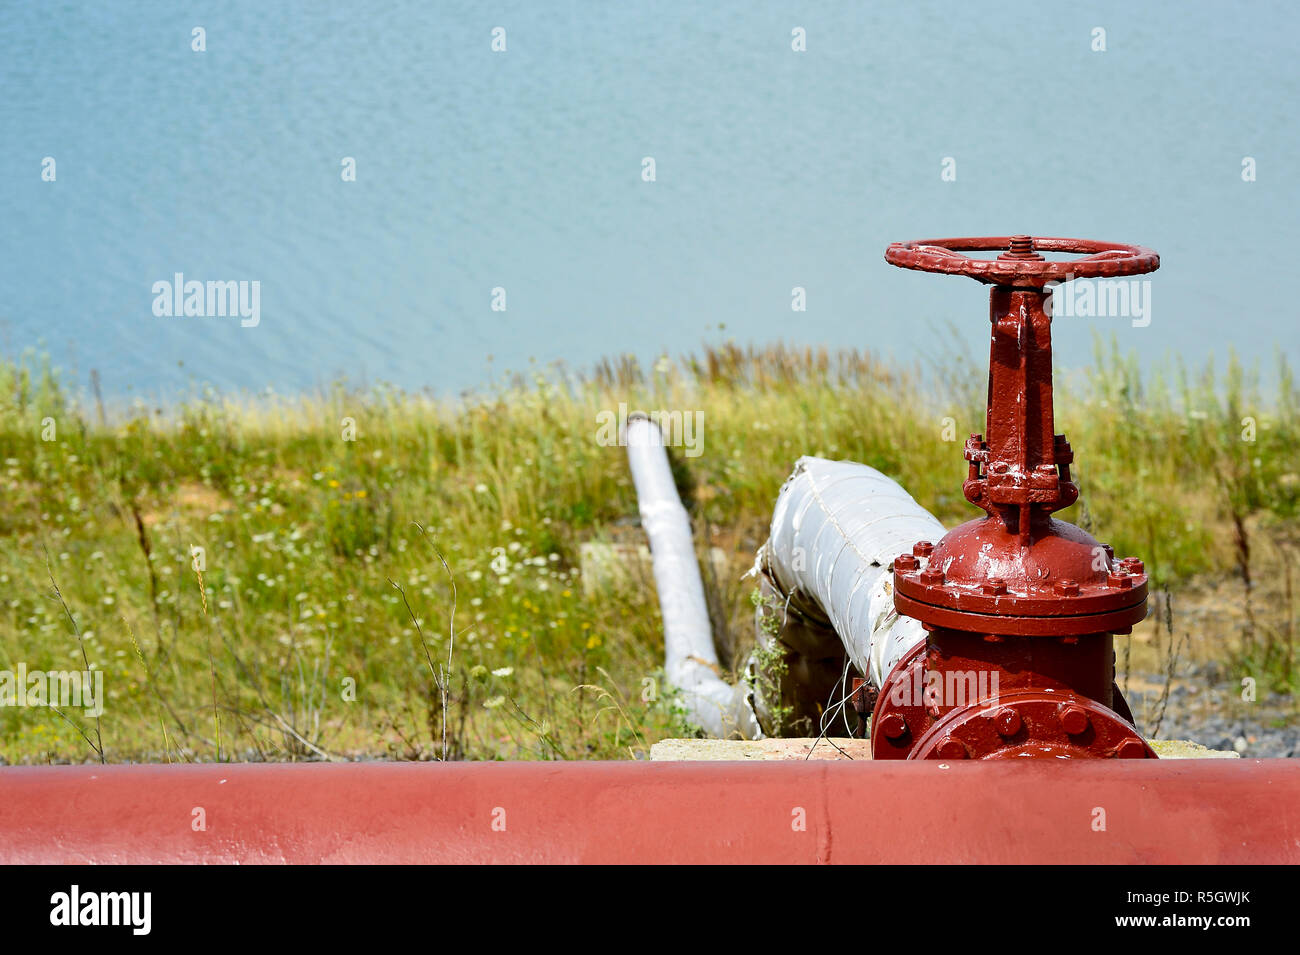 The valve from the pipeline against the background of the factory and an artificial lake - Stock Image